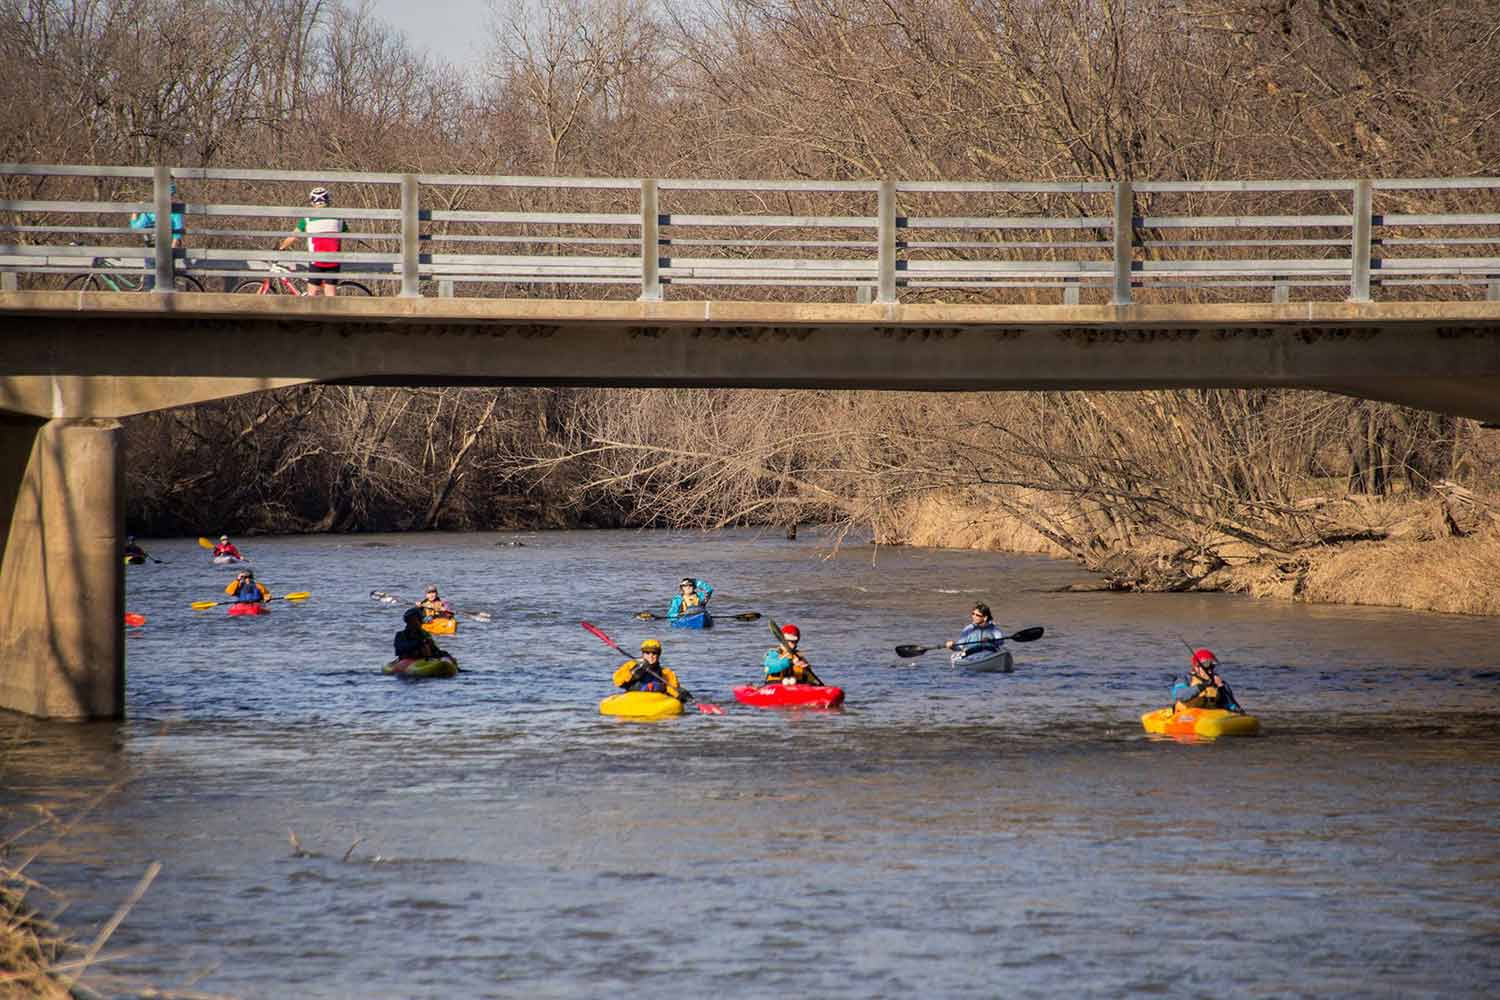 Kayakers enjoying the Baraboo River